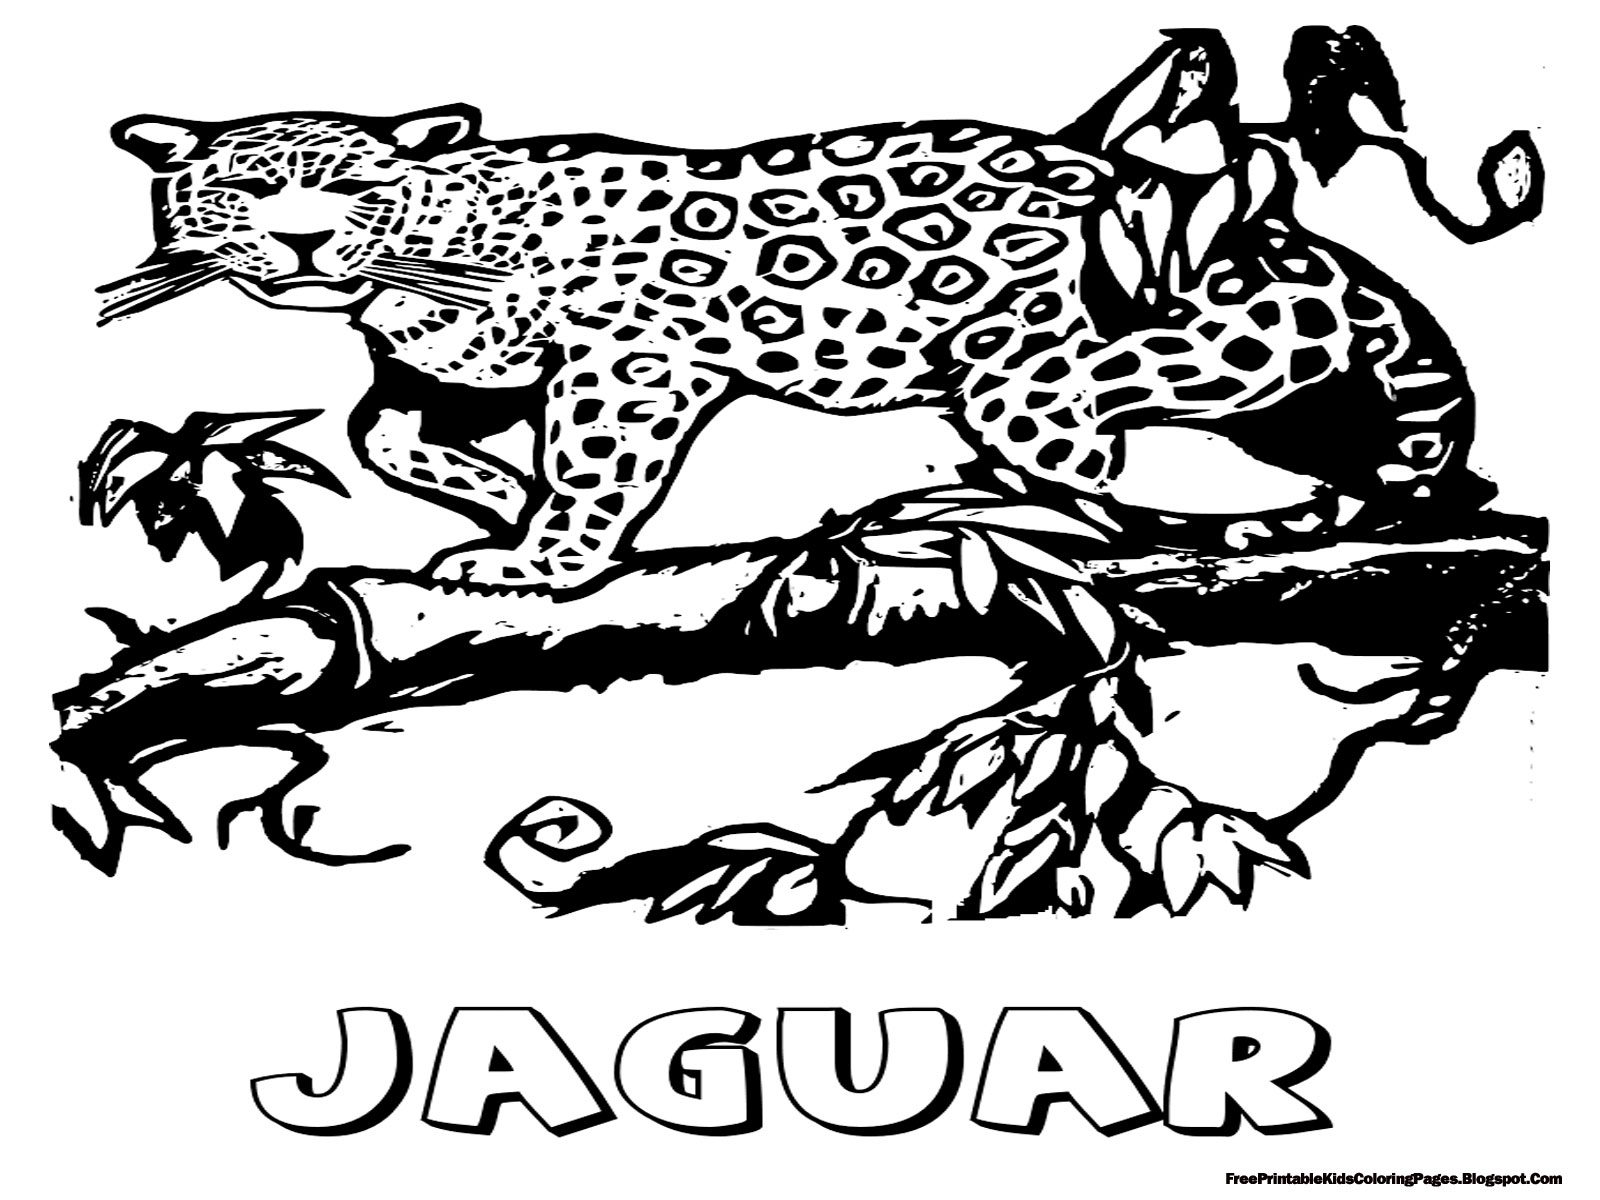 jaguar e type coloring pages - photo#24